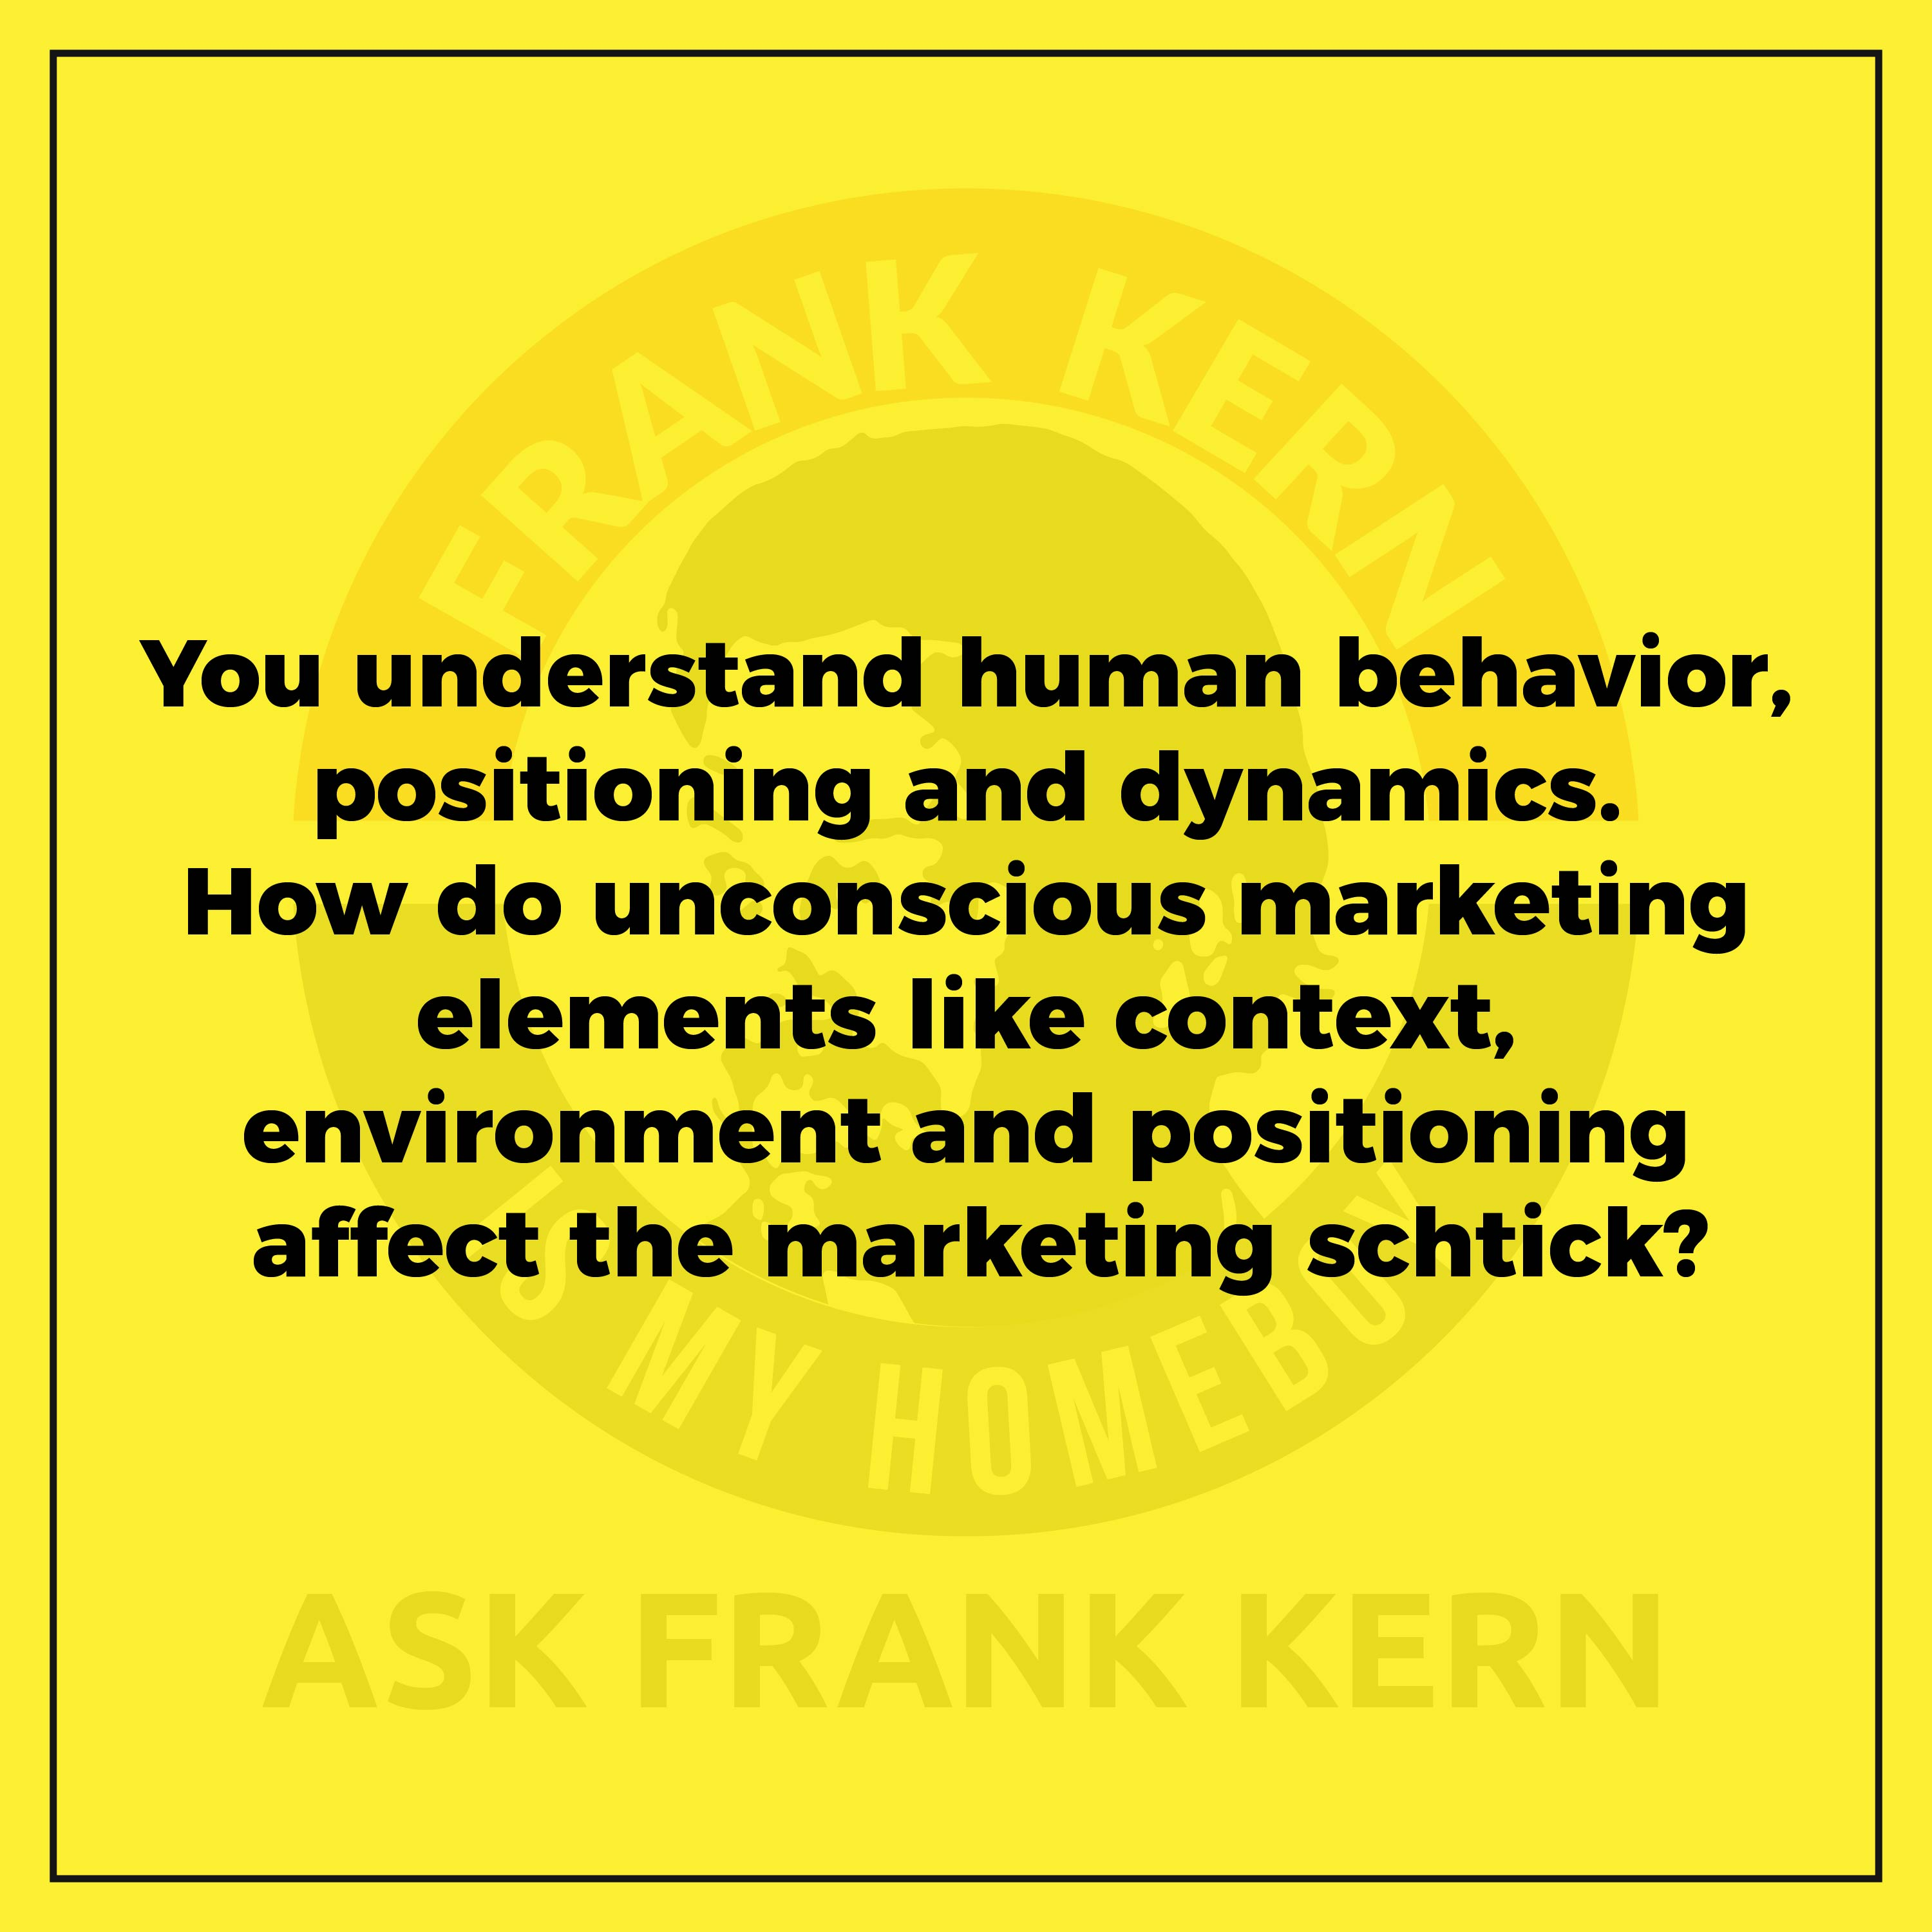 You understand human behavior, positioning and dynamics. How do unconscious marketing elements like context, environment and positioning affect the marketing schtick?